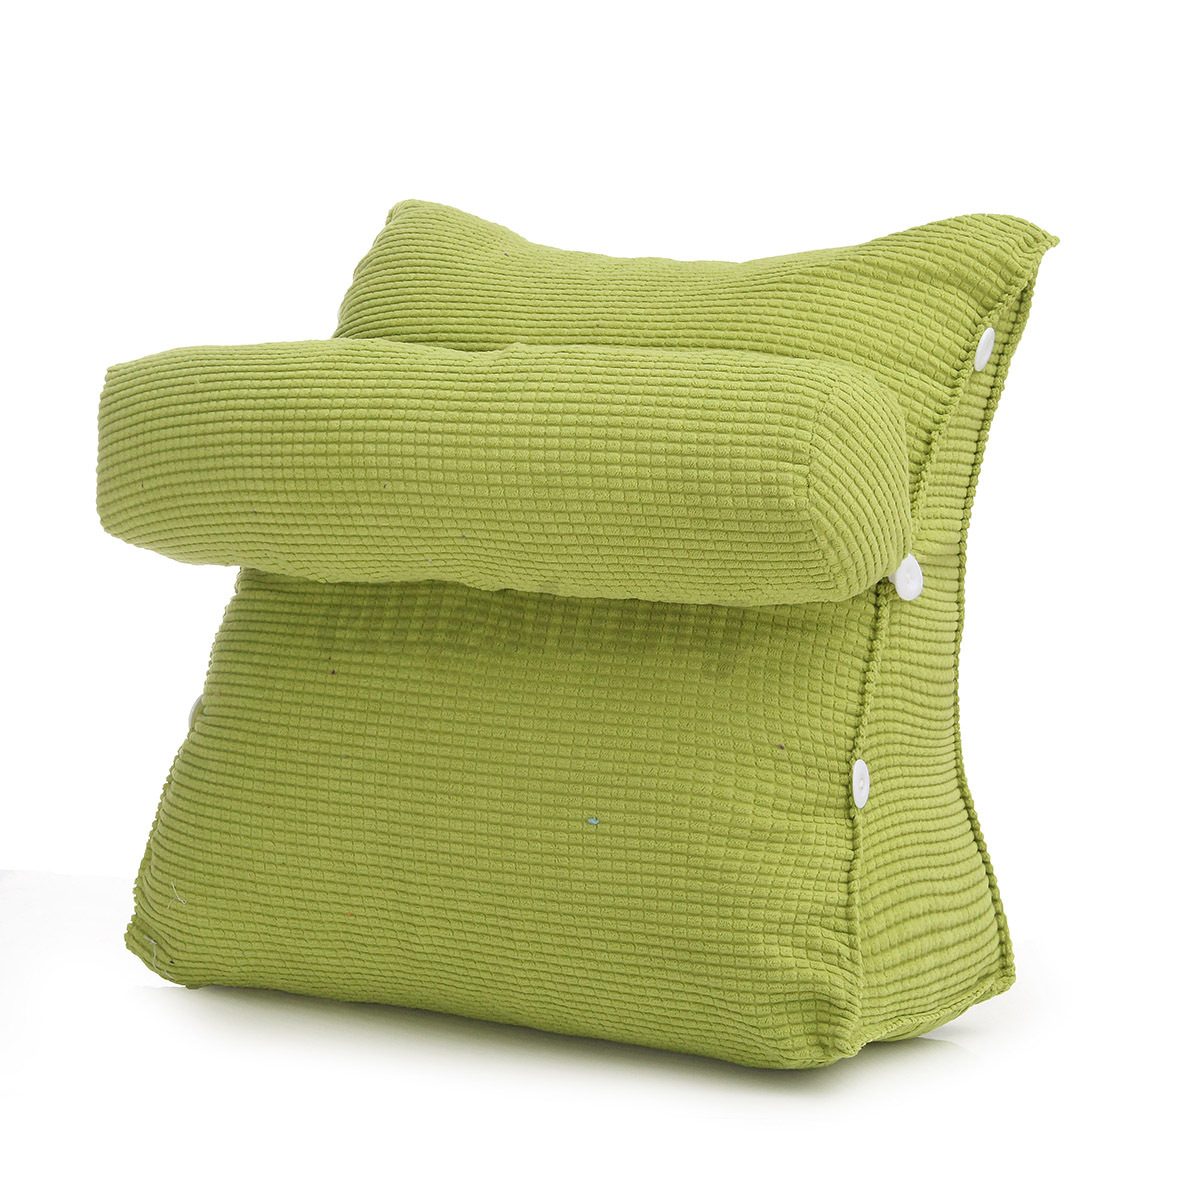 adjustable sofa bed office waist neck support back wedge cushion